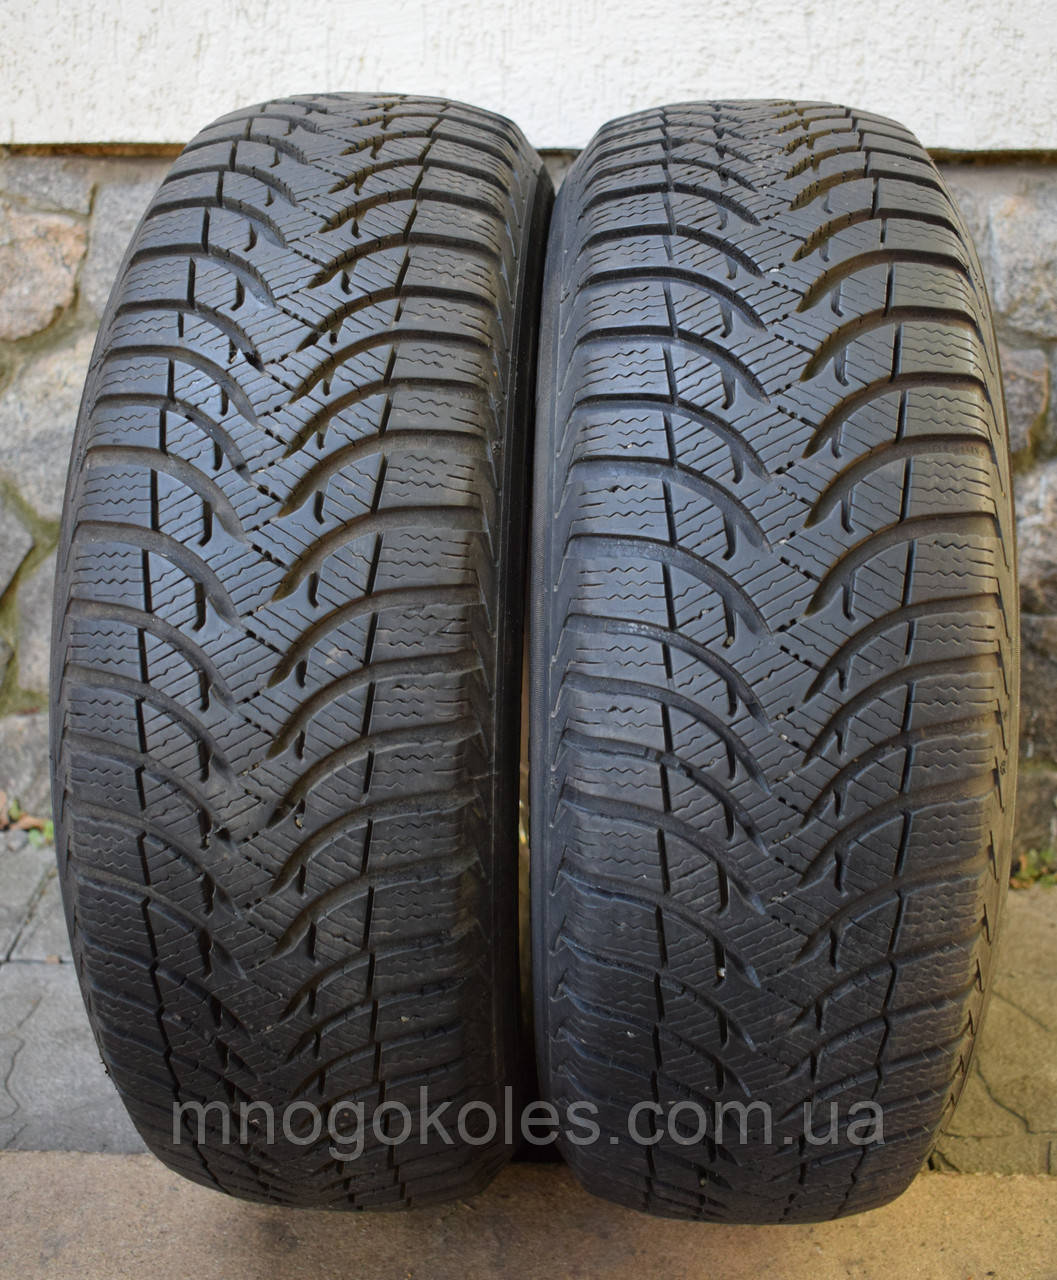 Шини б/у 185/60 R14 Michelin Alpin, ЗИМА, 6.7 мм, пара